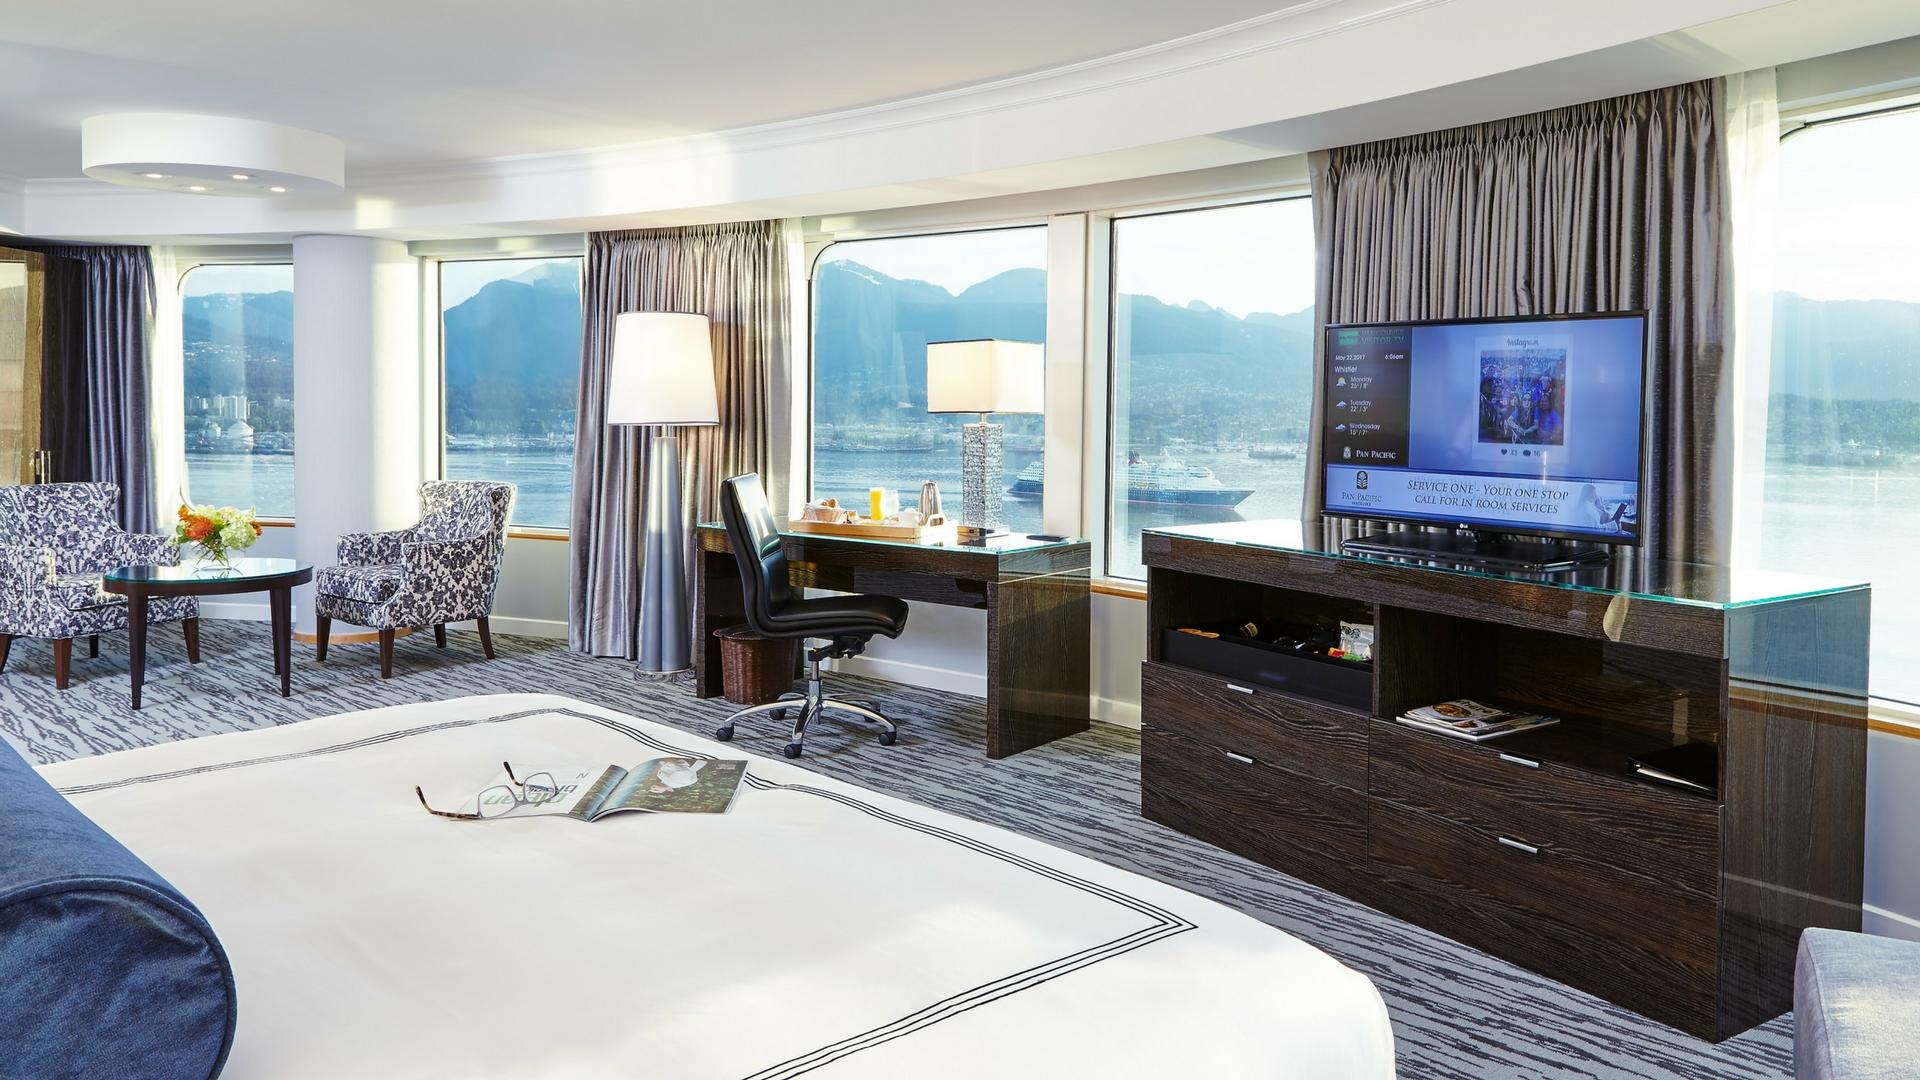 Pan_Pacific_Vancouver_Panoramic_Harbourview_Room